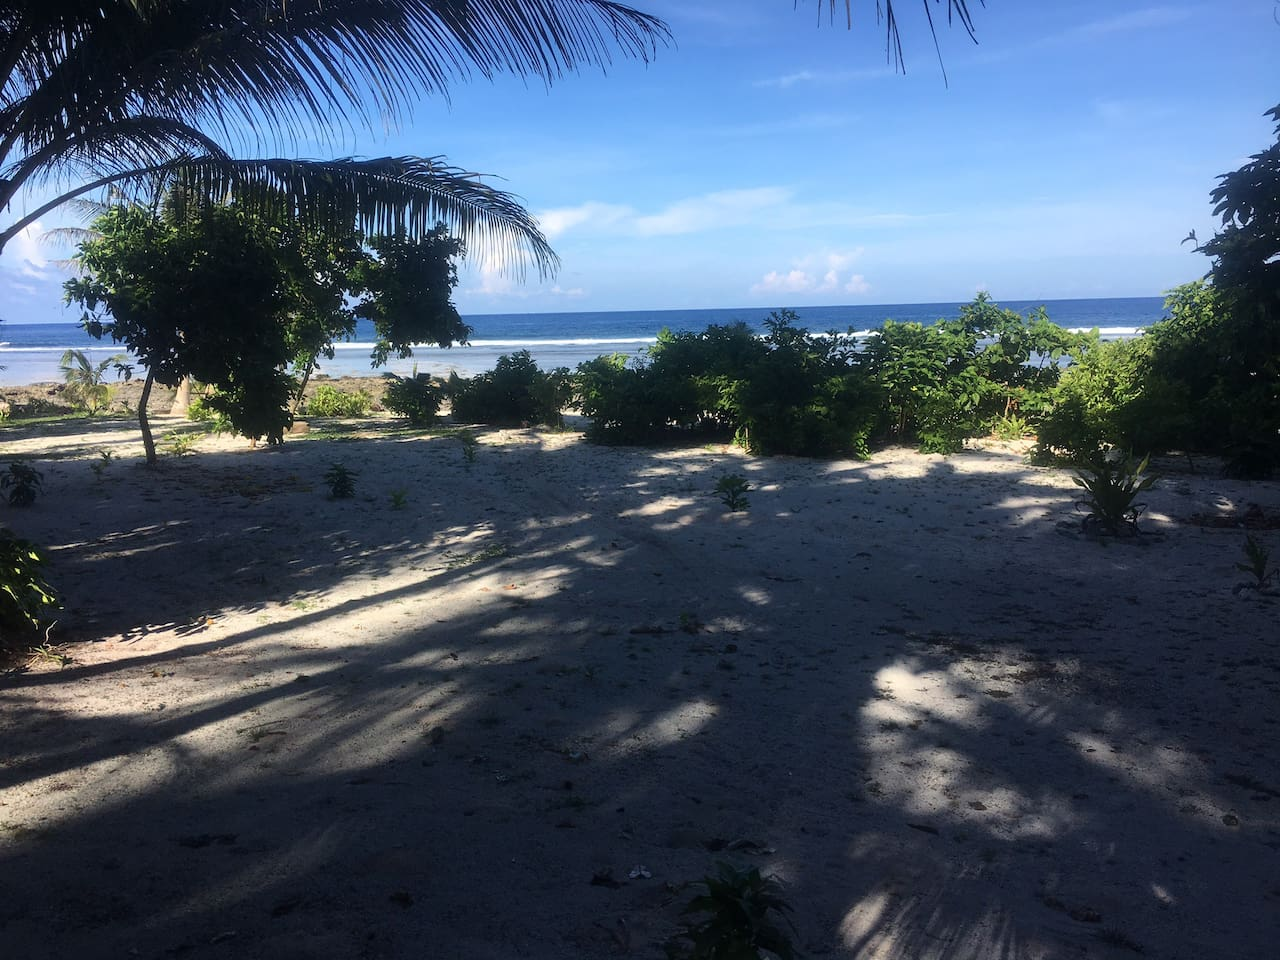 The spectacular View of the sea, surf and beach from infront of the cottages